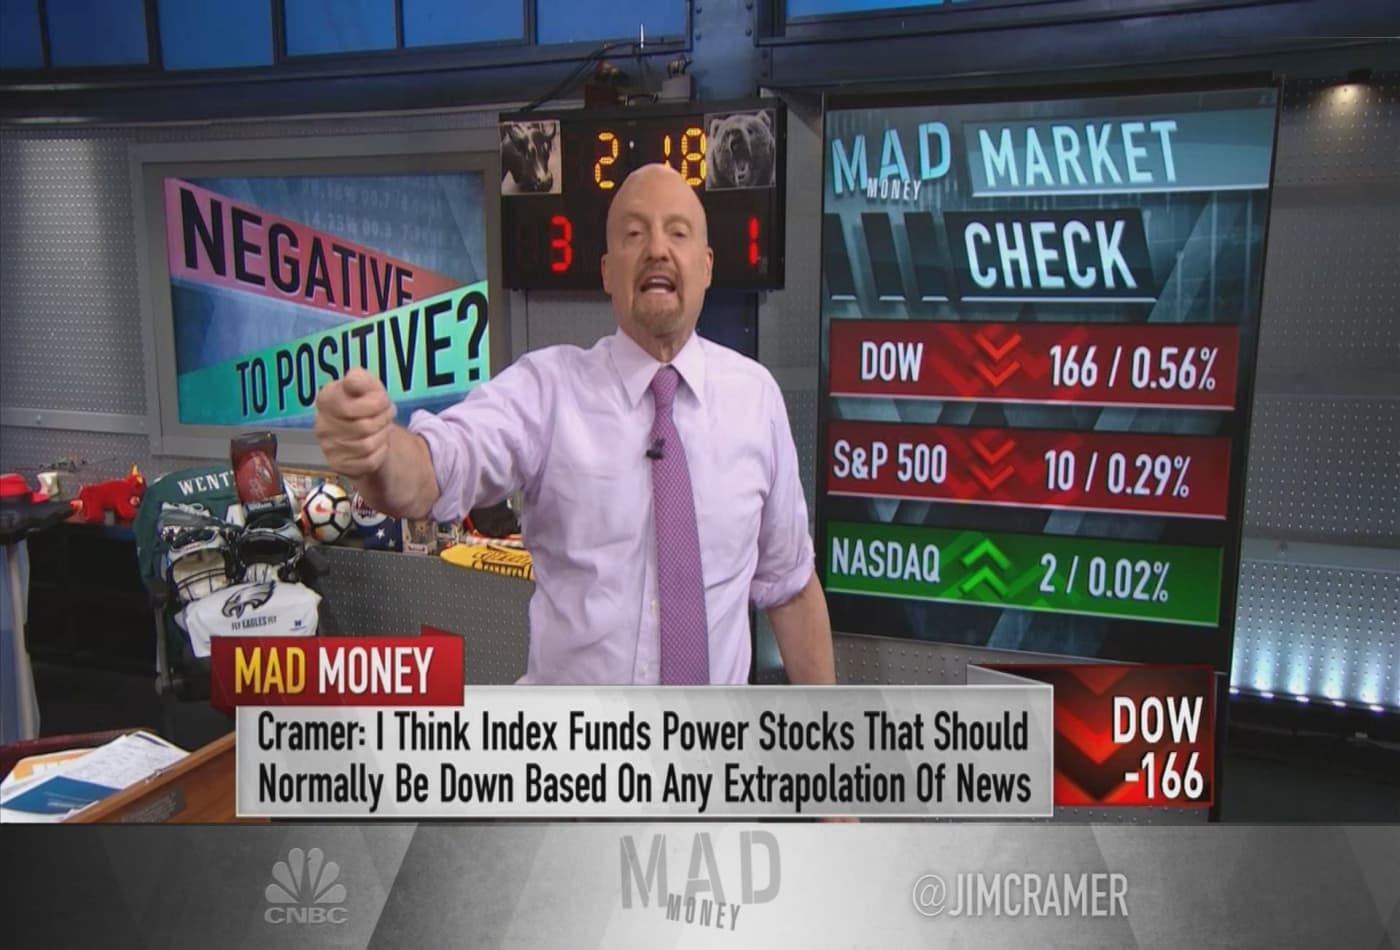 Apple's coronavirus warning drives interest rates down, hurting the banks: Jim Cramer